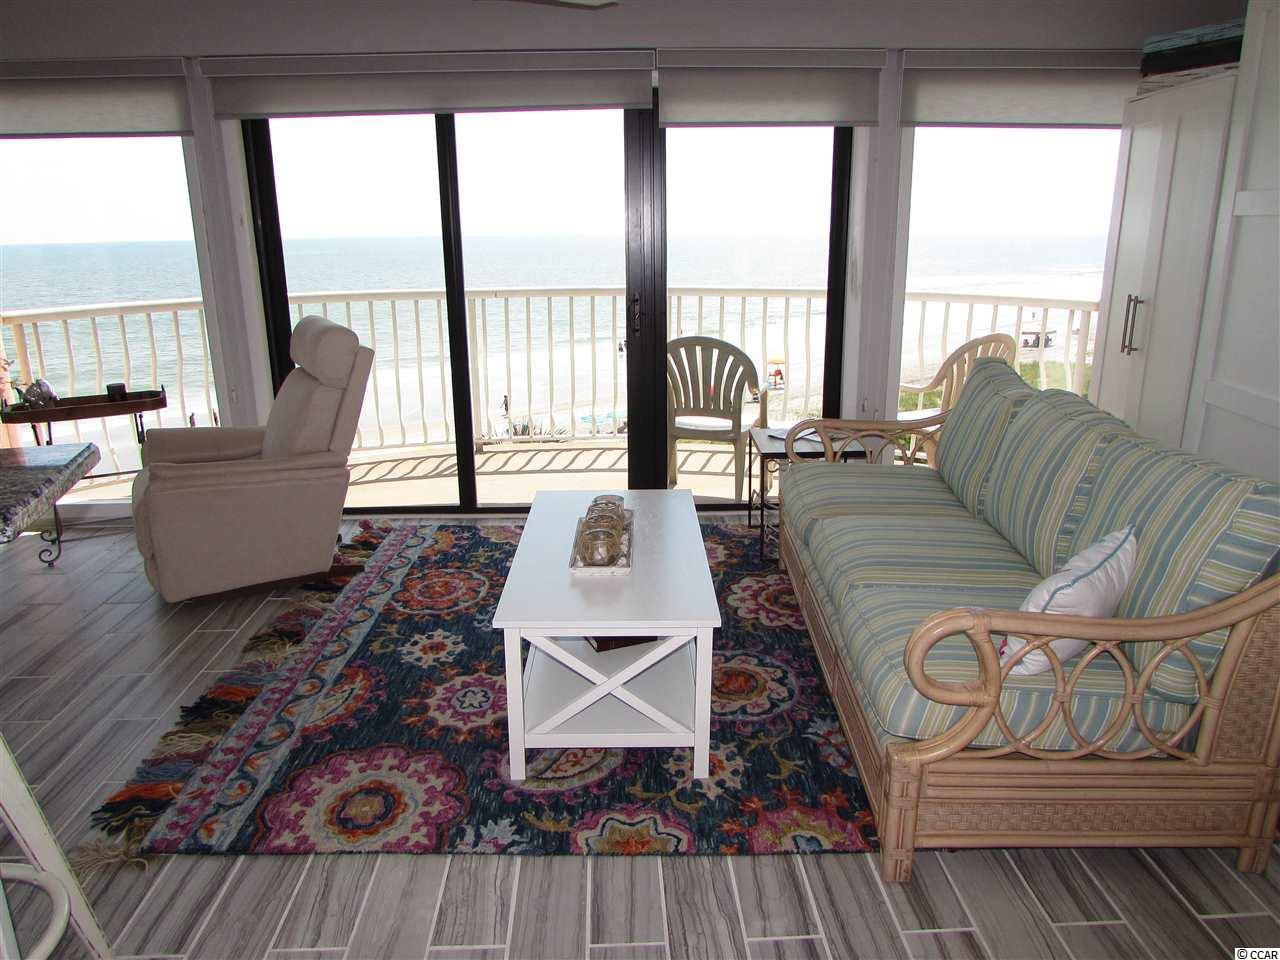 This property available at the  ST. CLEMENTS in Myrtle Beach – Real Estate